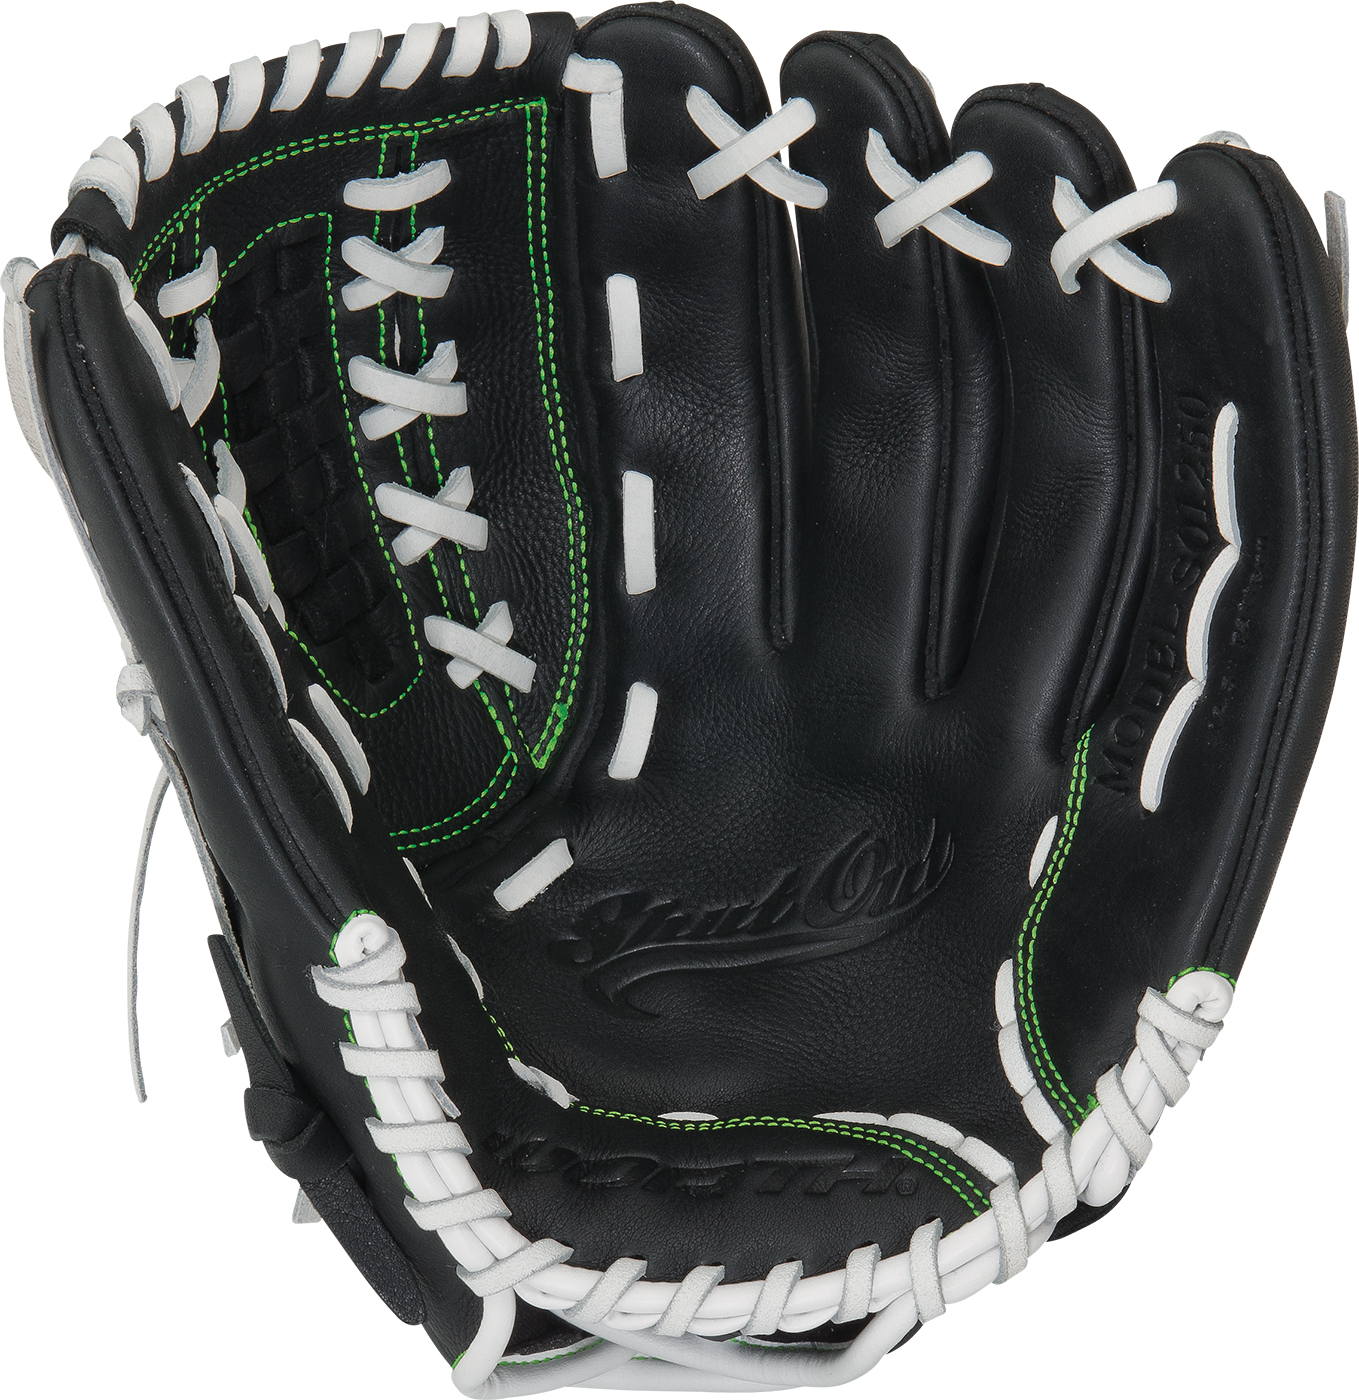 Worth Fastpitch Softball Gloves - Lowest Price Guaranteed!